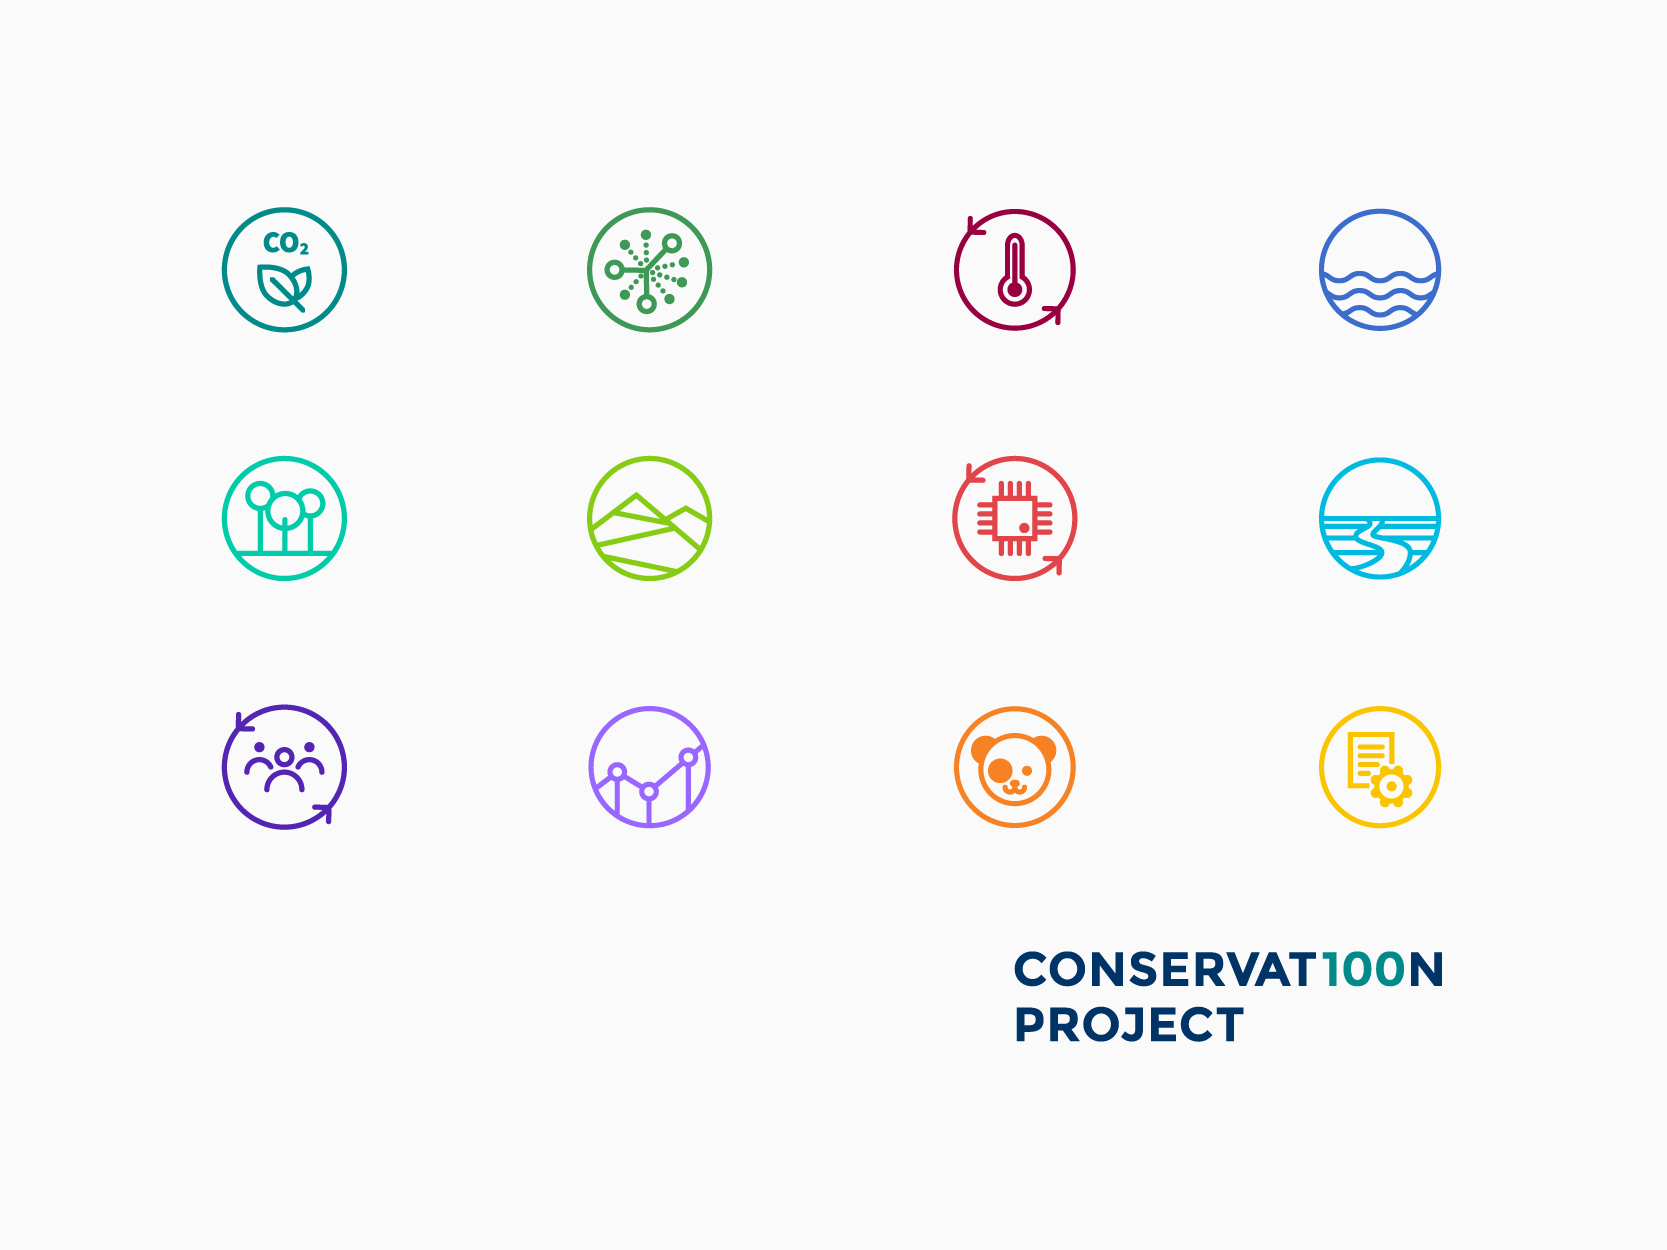 Conservat100n project bespoke icon set, by Chiara Mensa